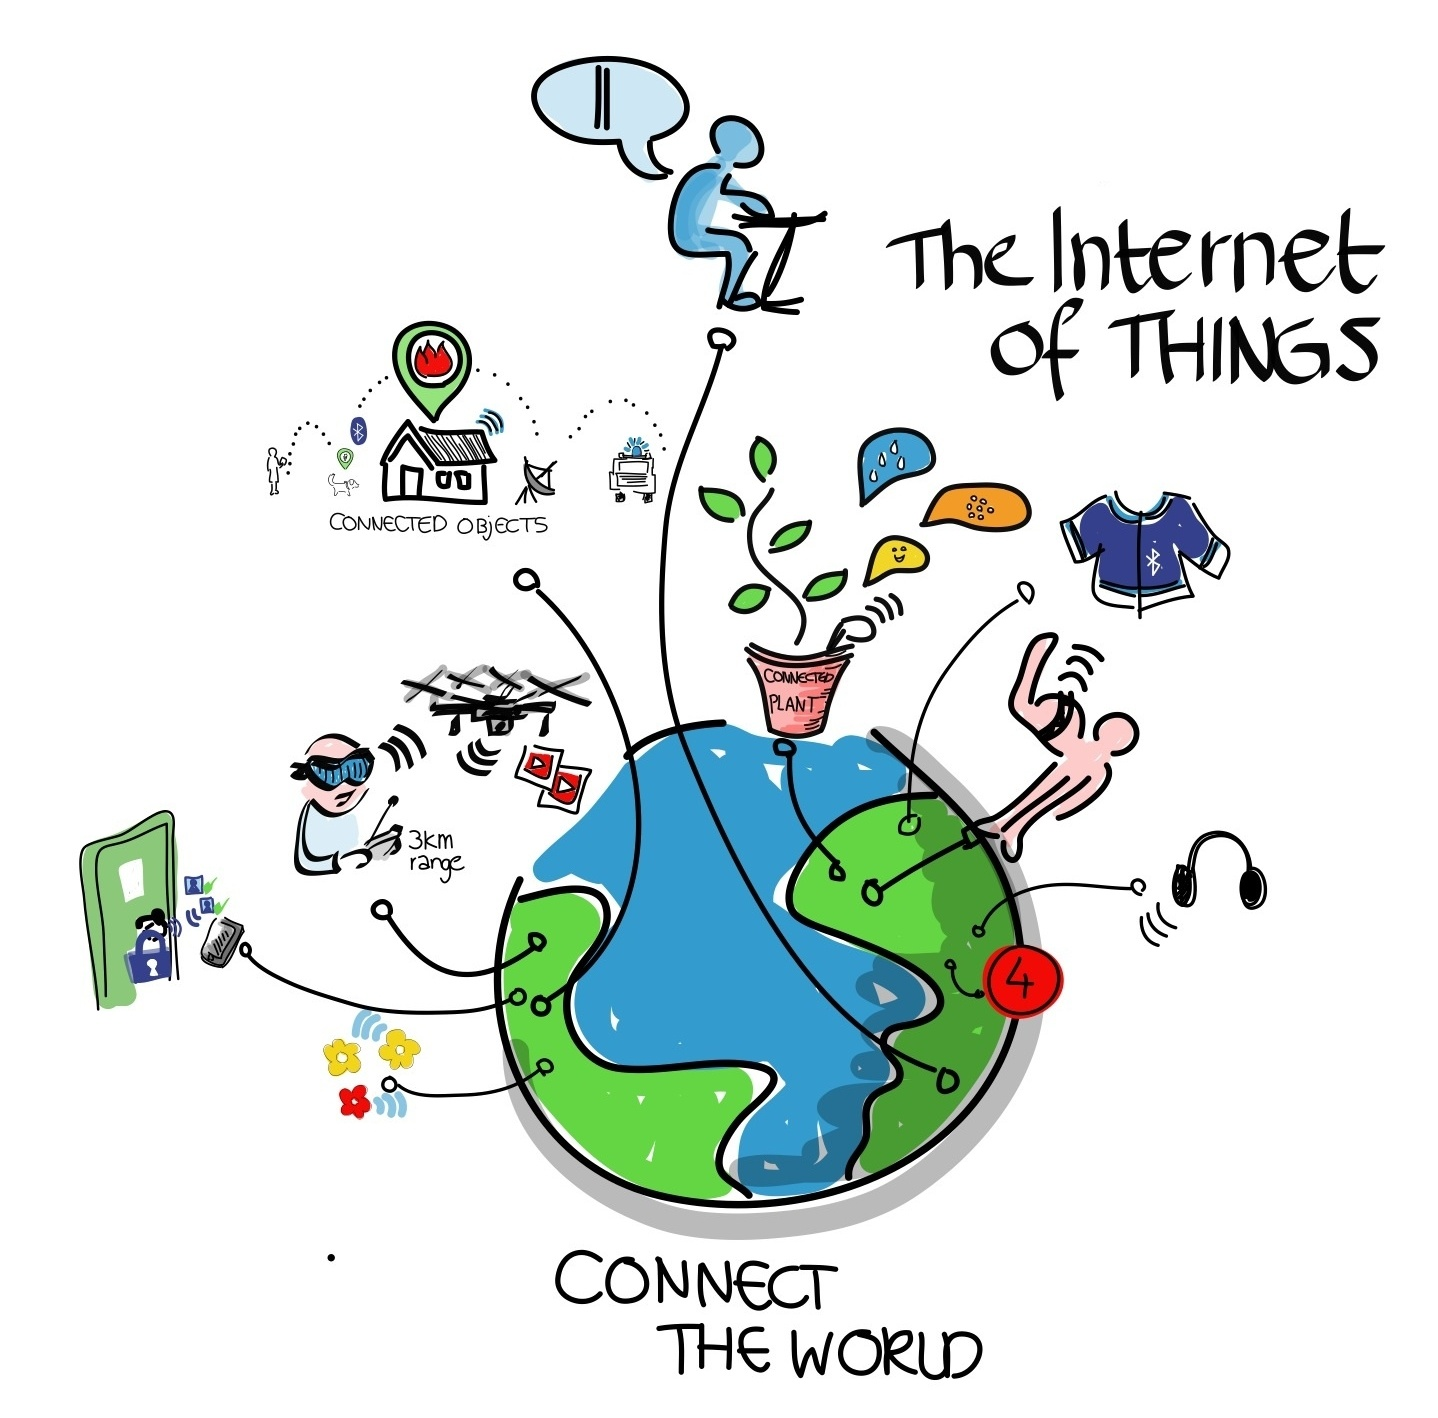 Life in an IoT world